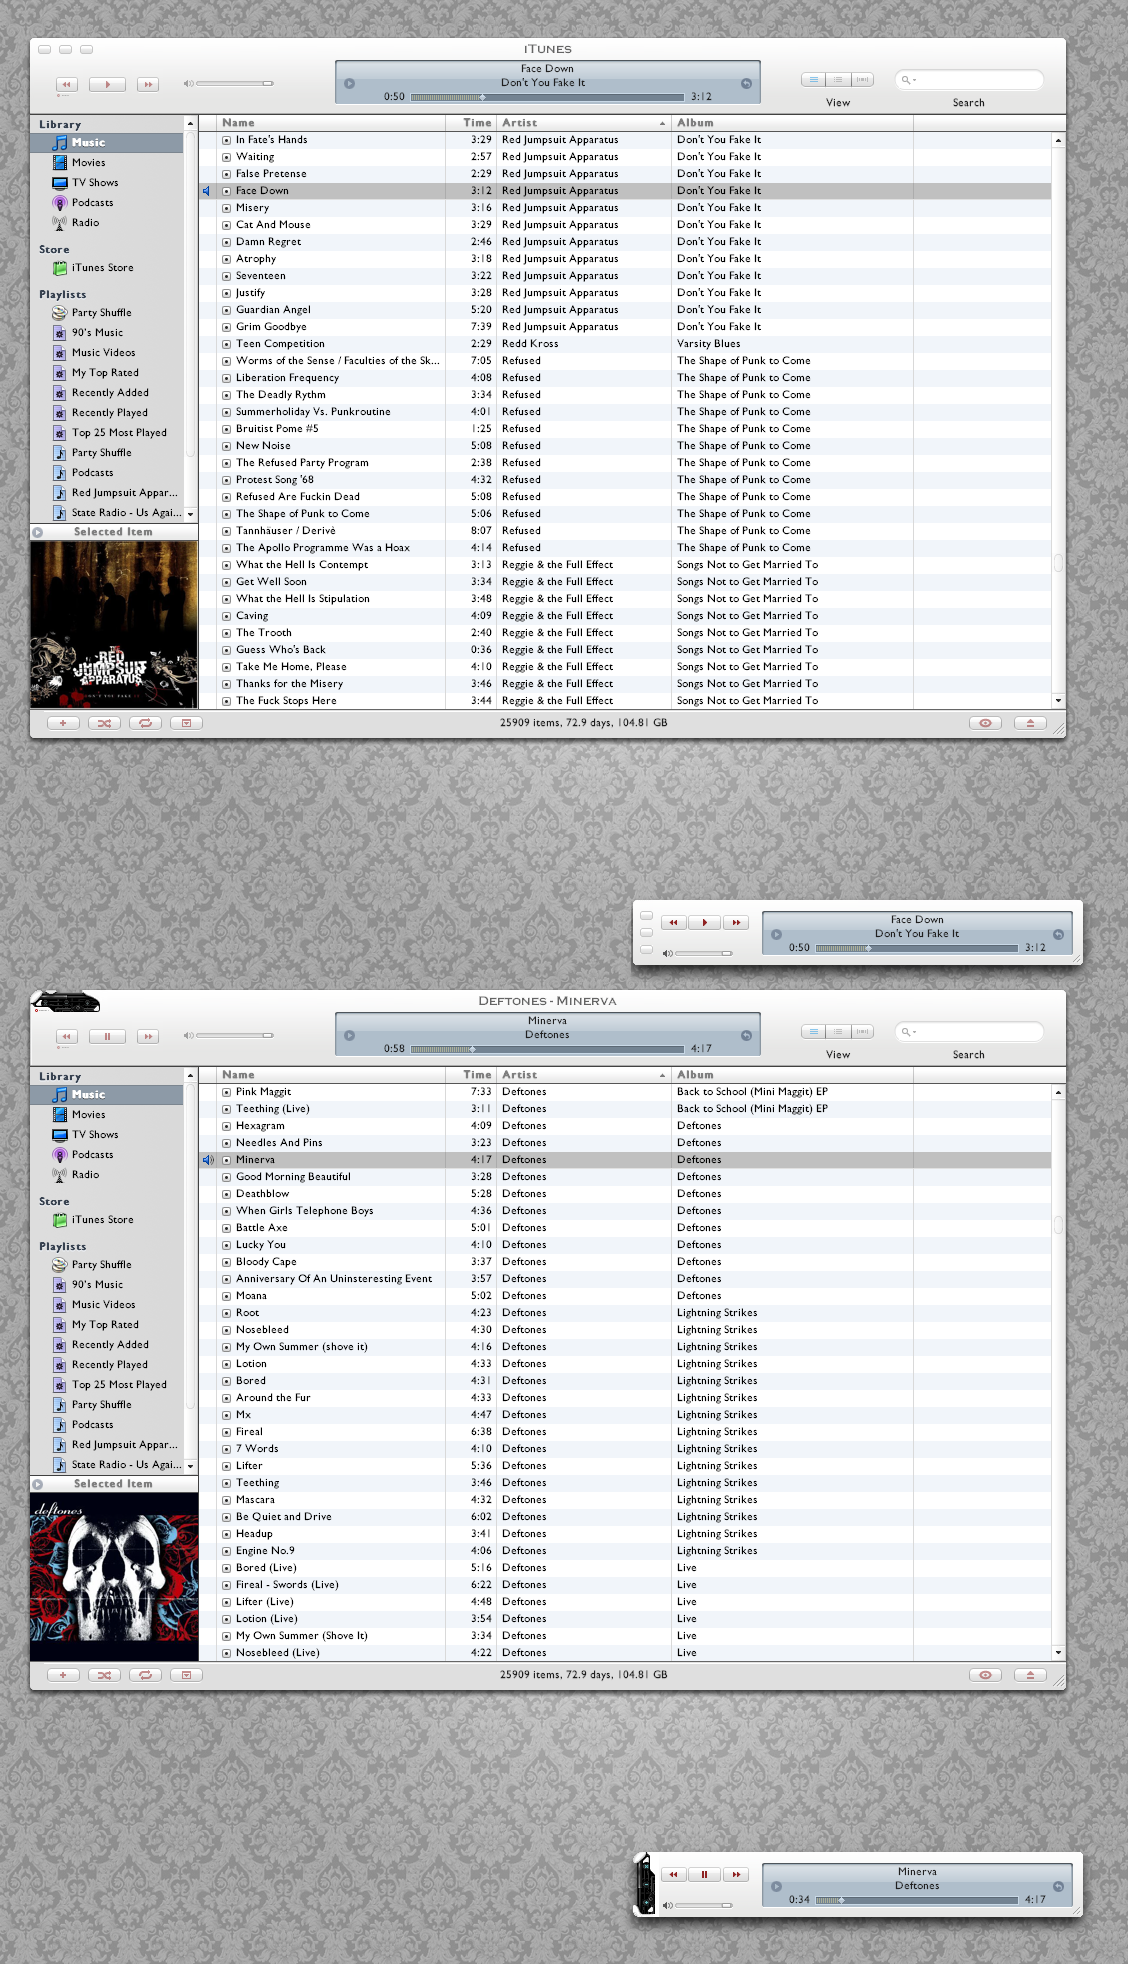 Amora and Mod for iTunes 7 by xizor227